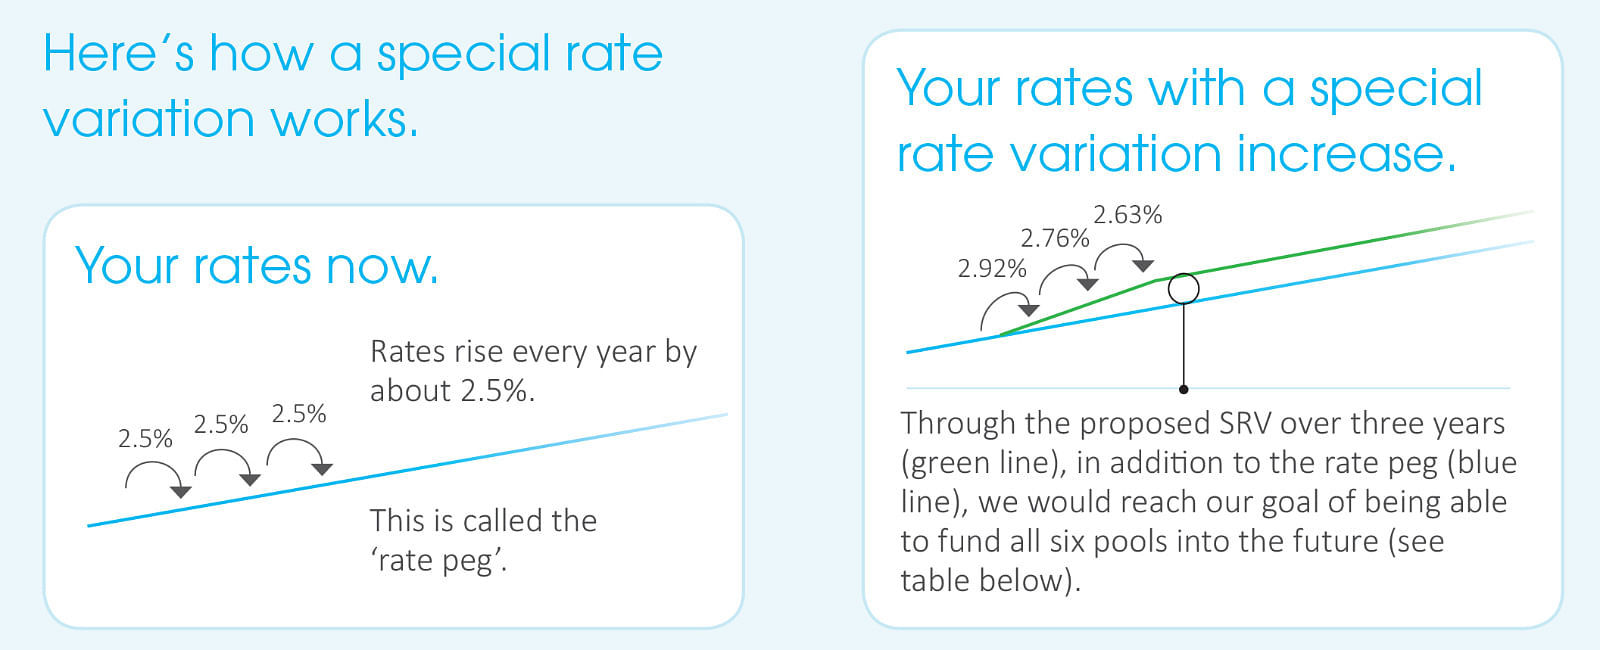 Image of How a special rate variation works.